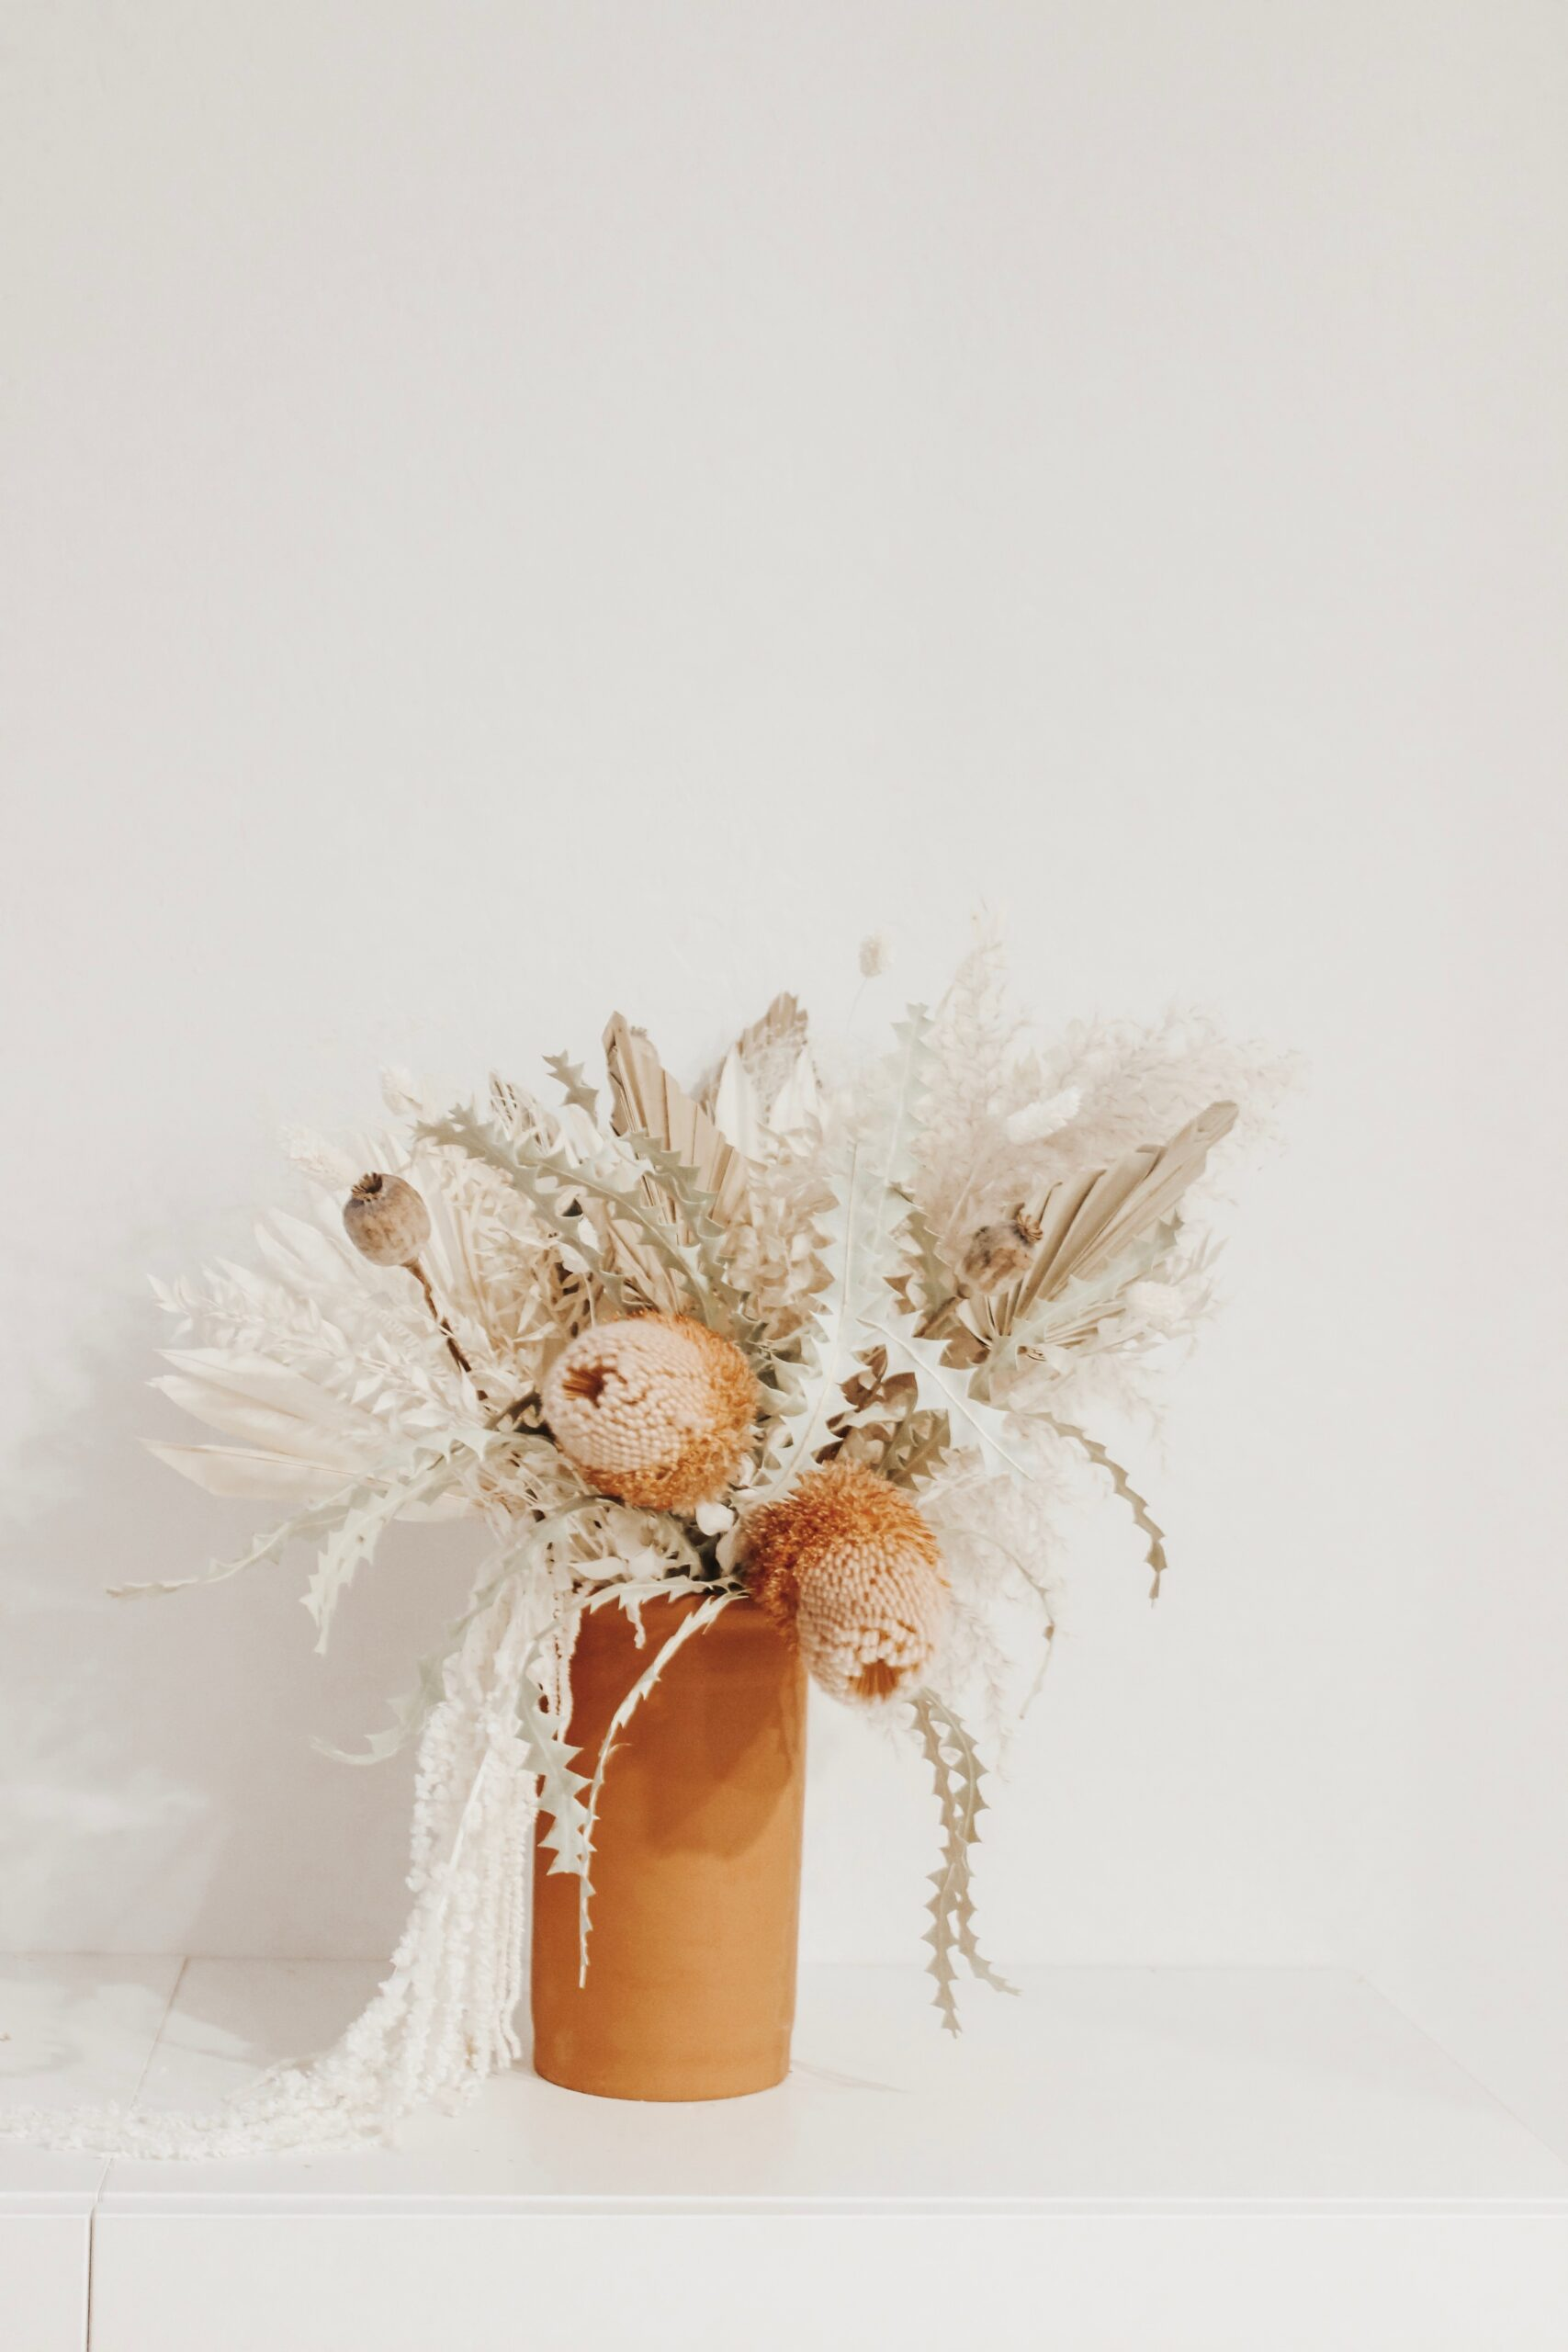 Where to find flowers for dried flower arrangements and the best flowers to choose.  Pampas grass flower arrangements    Darling Darleen Top Lifestyle Connecticut Blogger #driedflowers